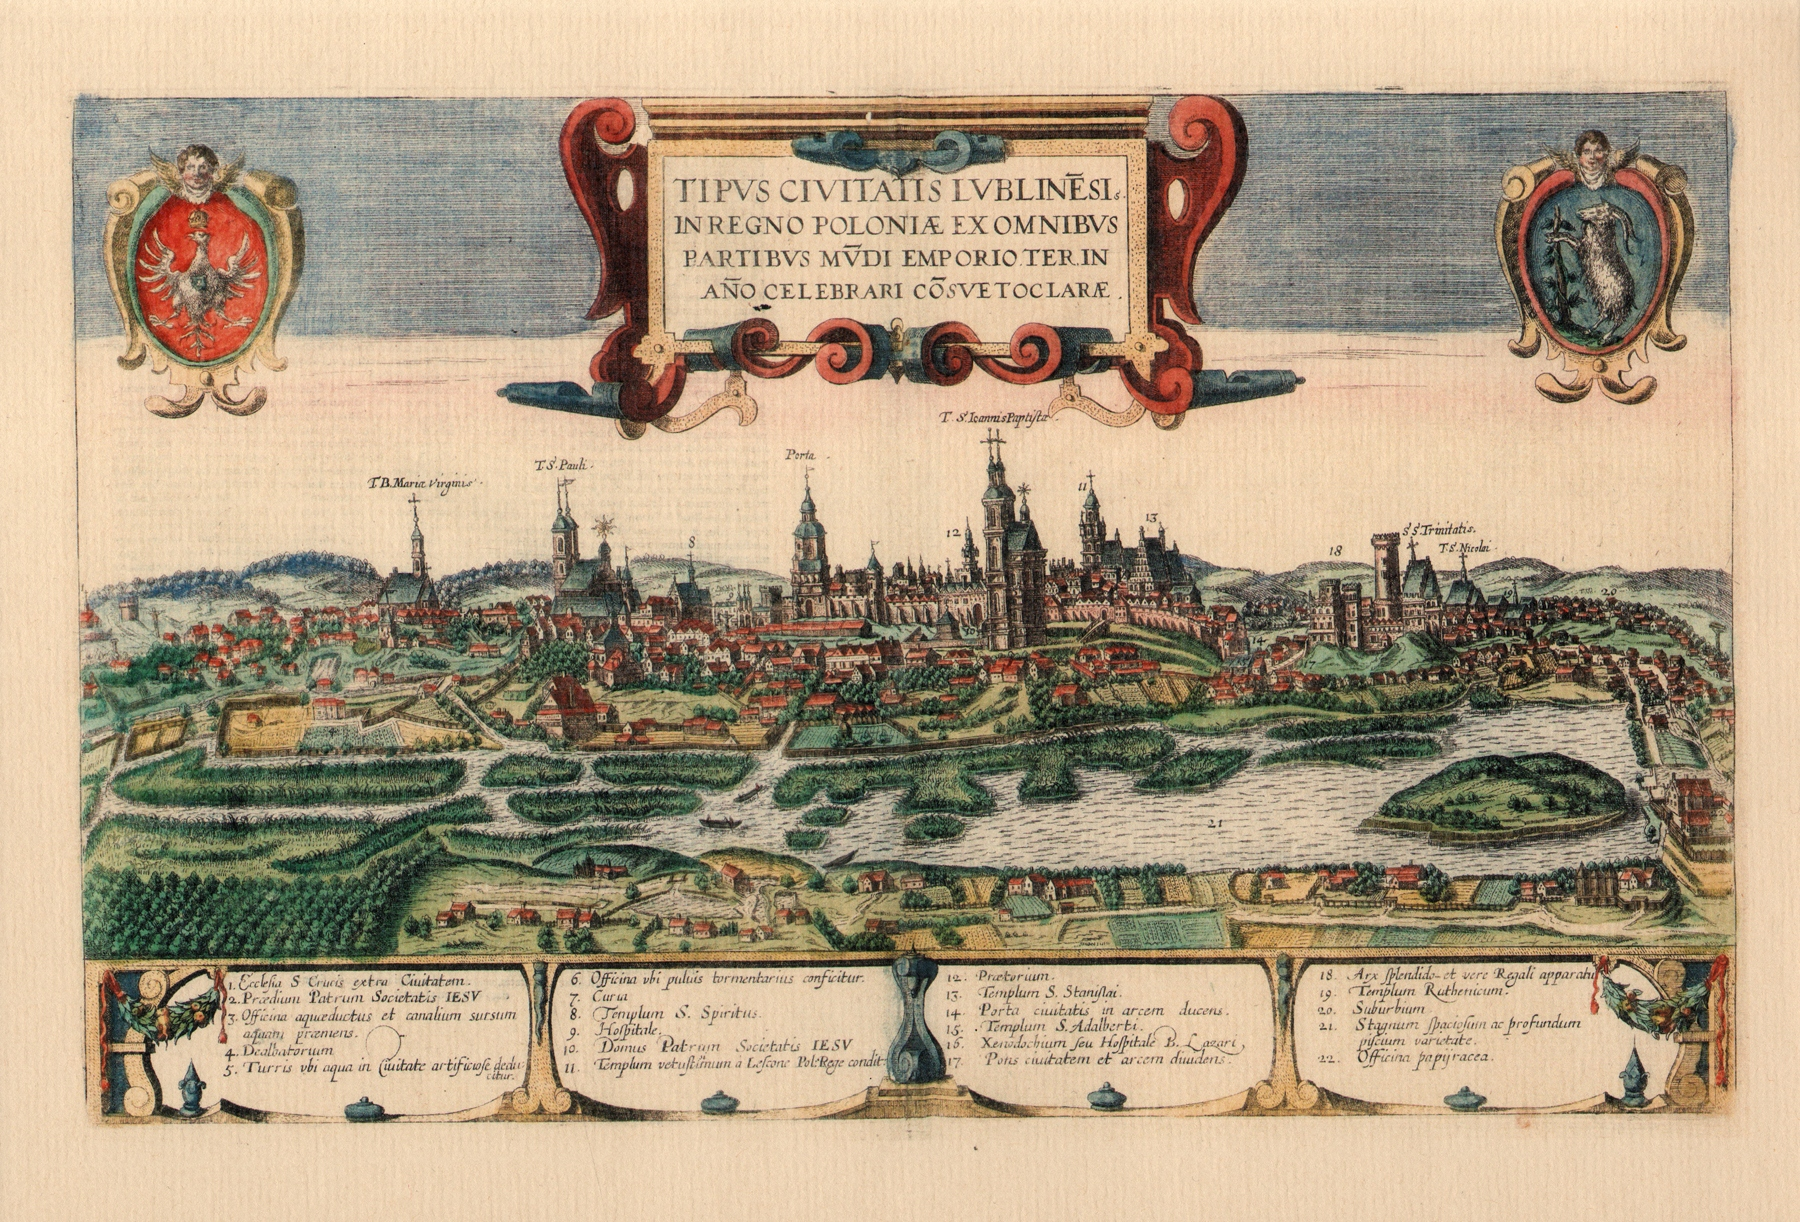 Item LUBLIN is a BEAUTIFUL PANORAMA of the seventeenth century 1618.